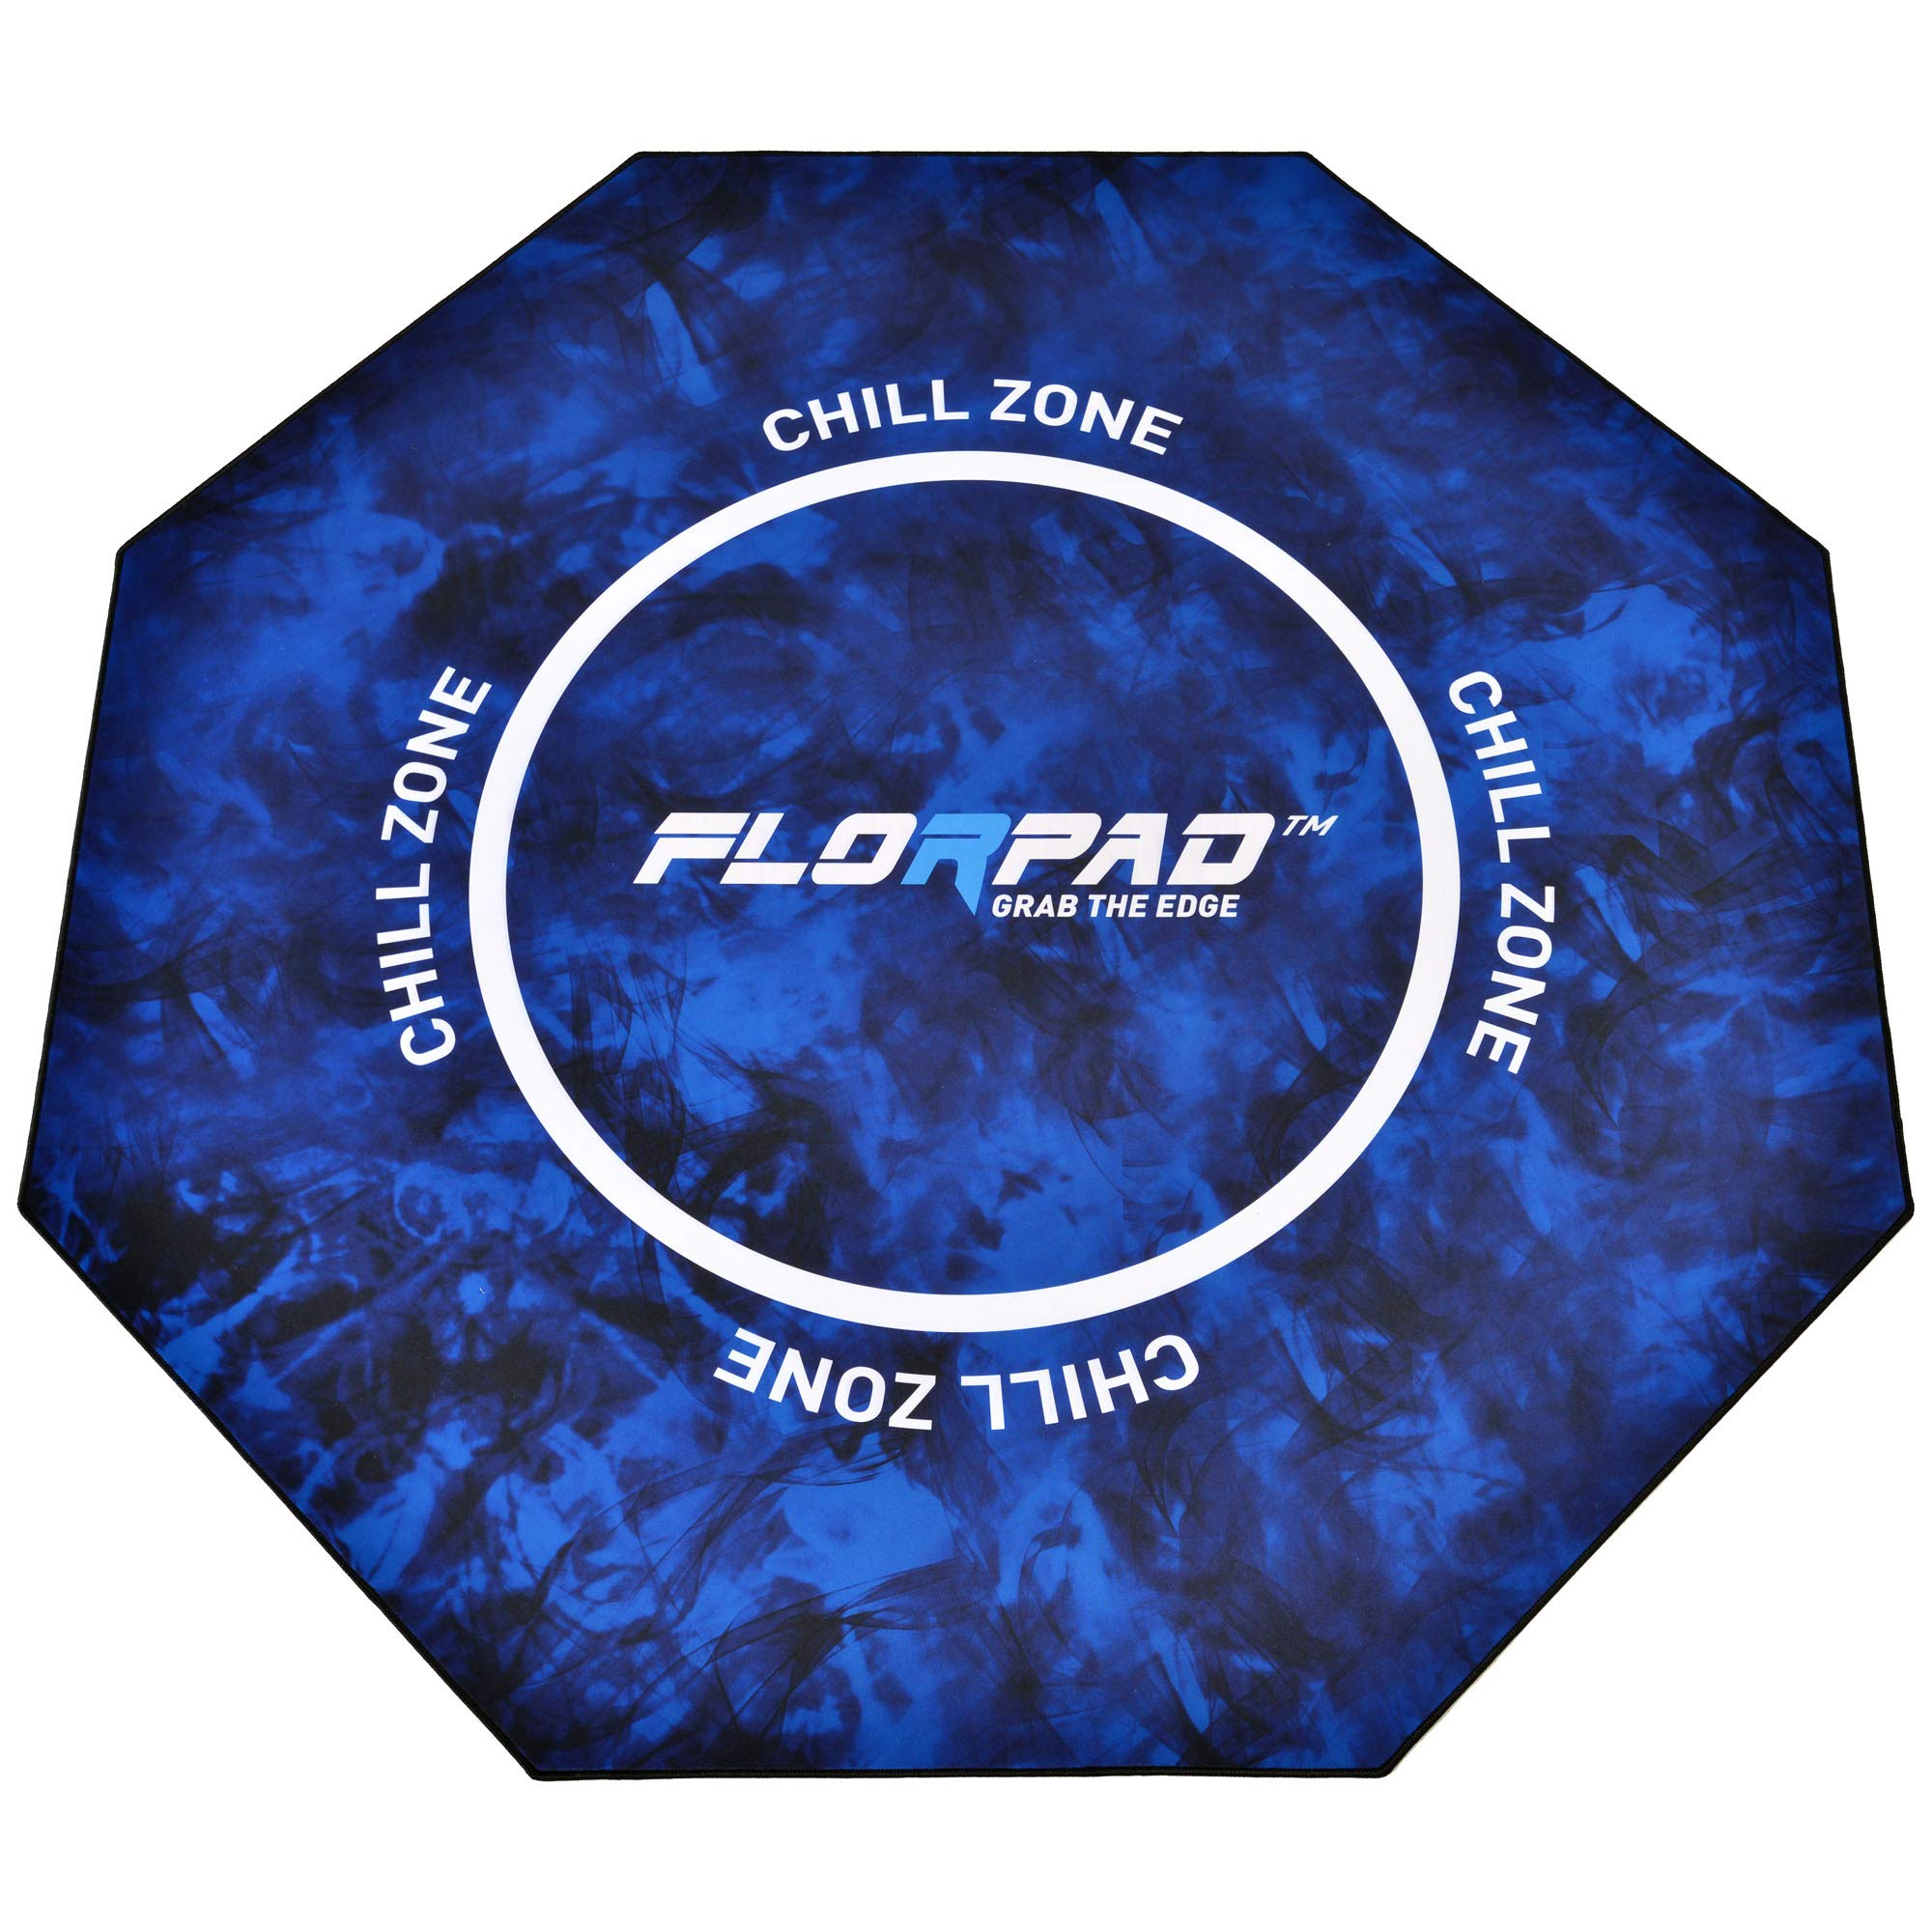 FlorPad Chill Zone 45'' x 45'' Anti Floor Scratching Floor Mat | Water Repellent | Multiple Styles | Noise Cancelling | Smooth Surface by FLORPAD GRAB THE EDGE